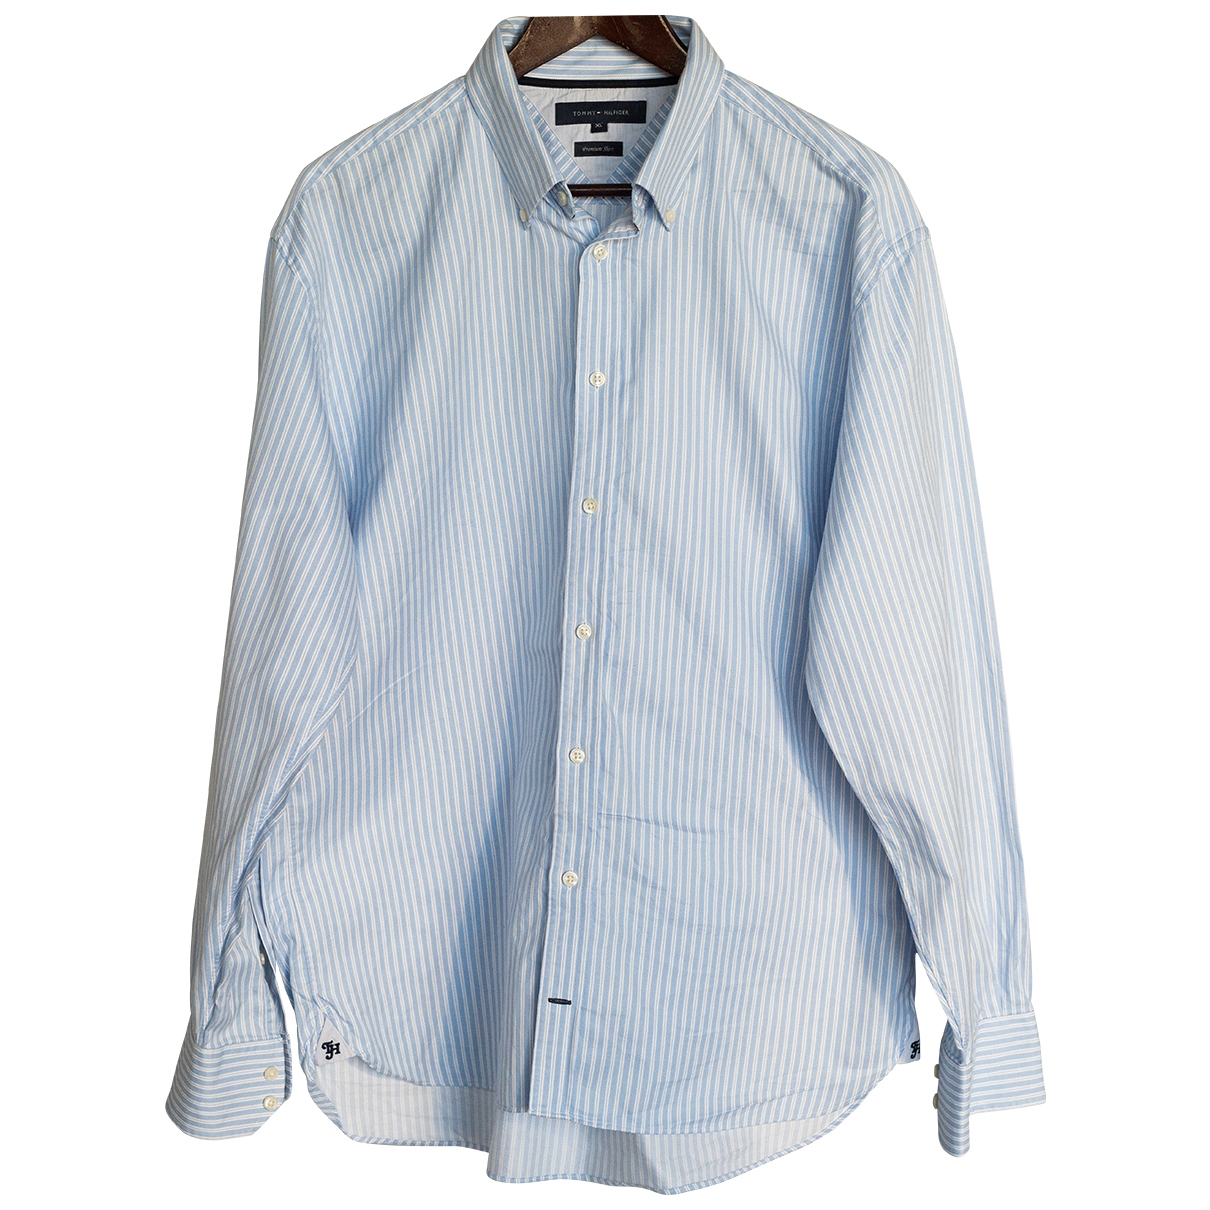 Tommy Hilfiger \N Cotton Shirts for Men XL International